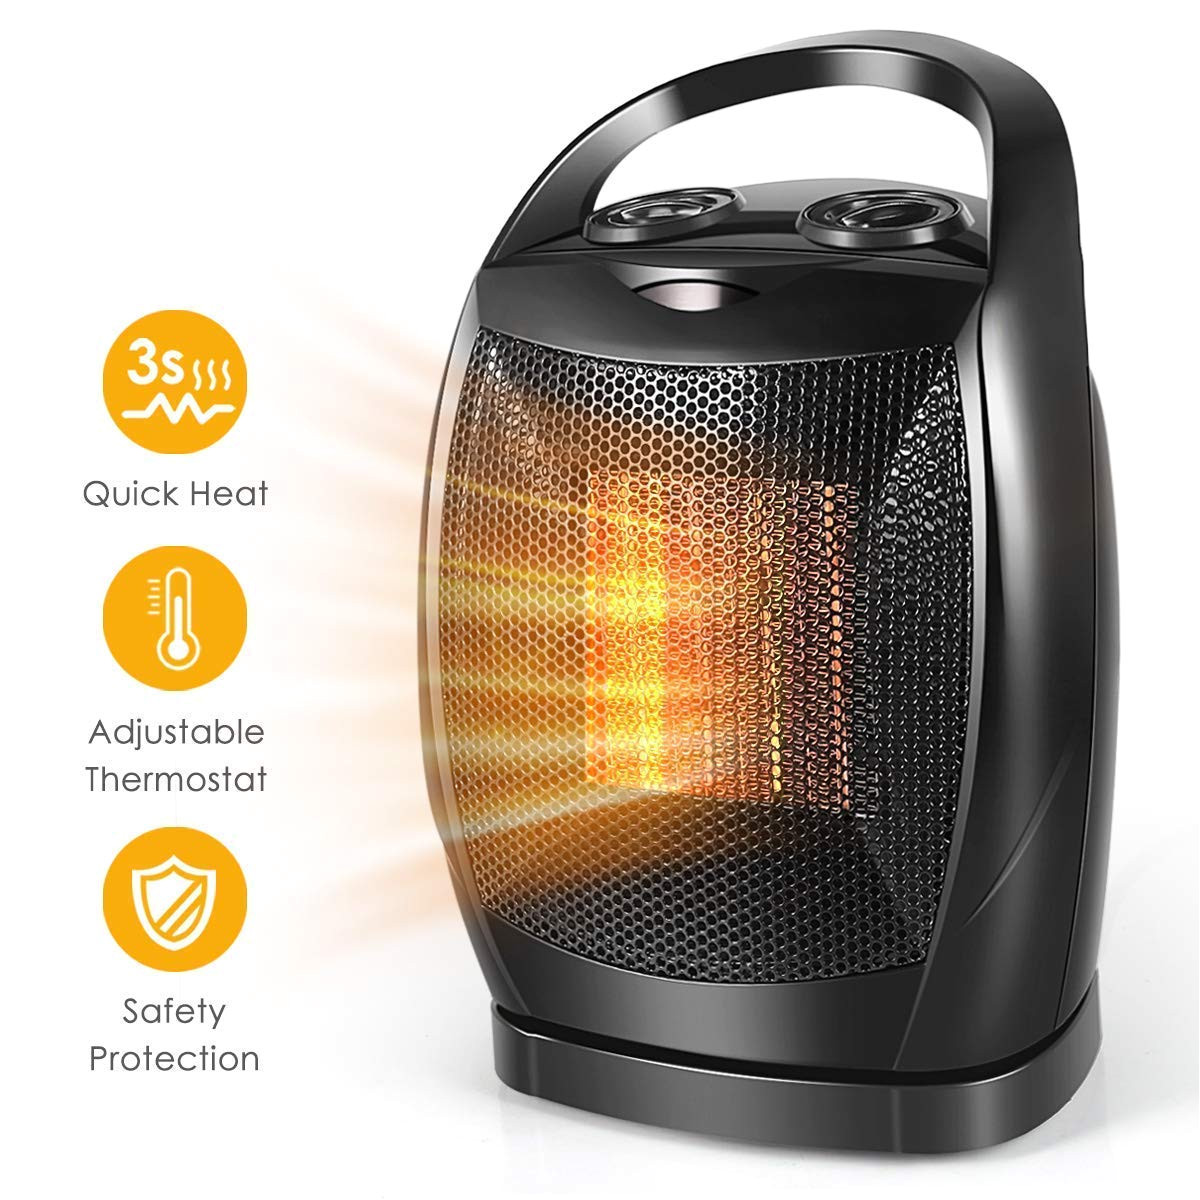 space heater 1500w fast heat small ceramic space heater for office small room desk